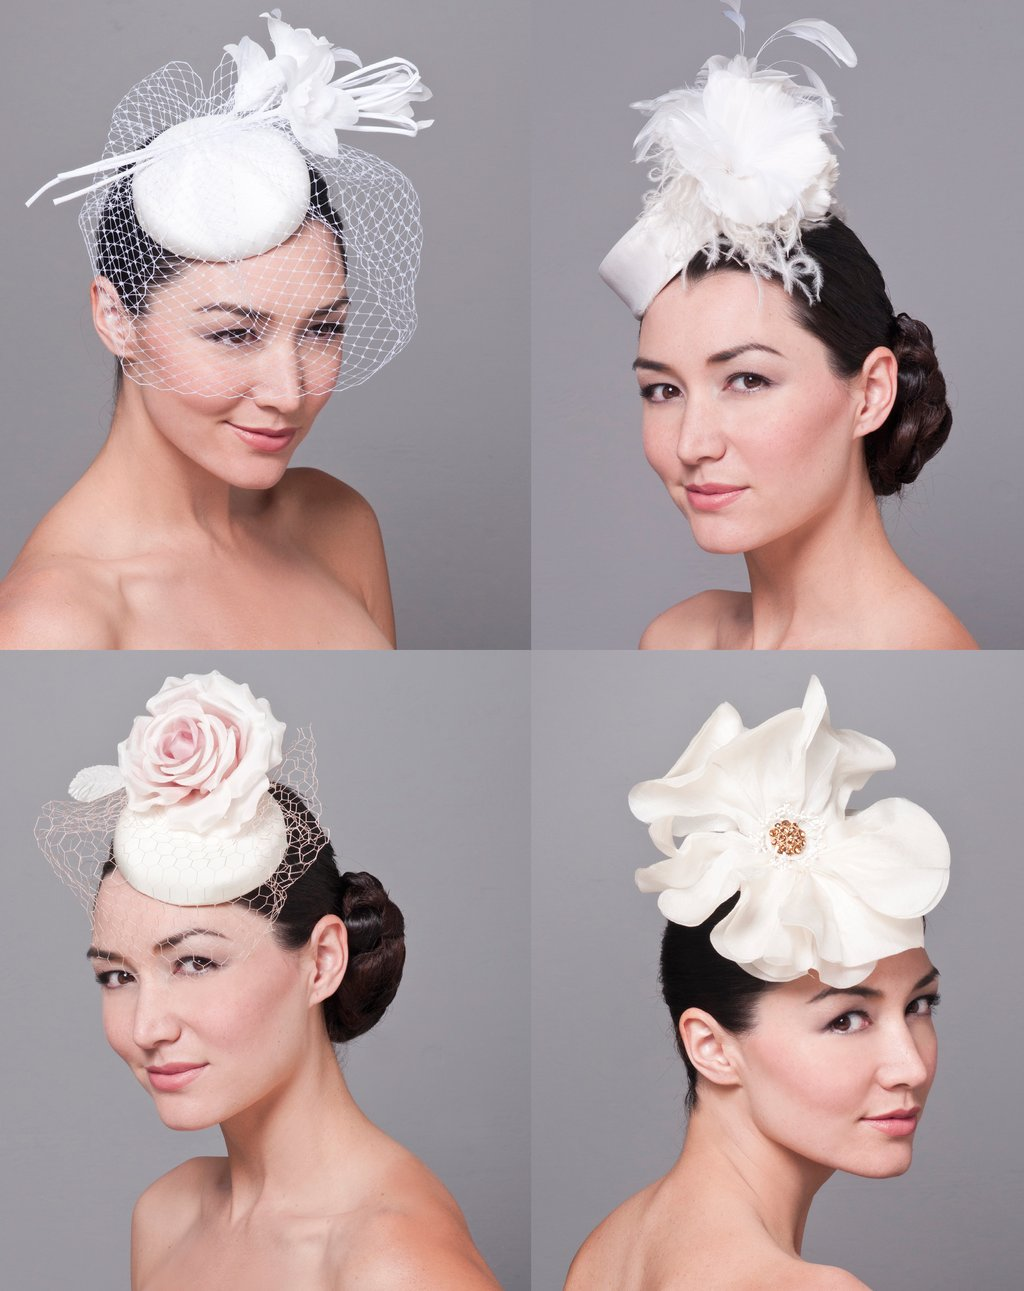 Royal wedding-inspired wedding hats and bridal fascinators 5a08e5a3b16